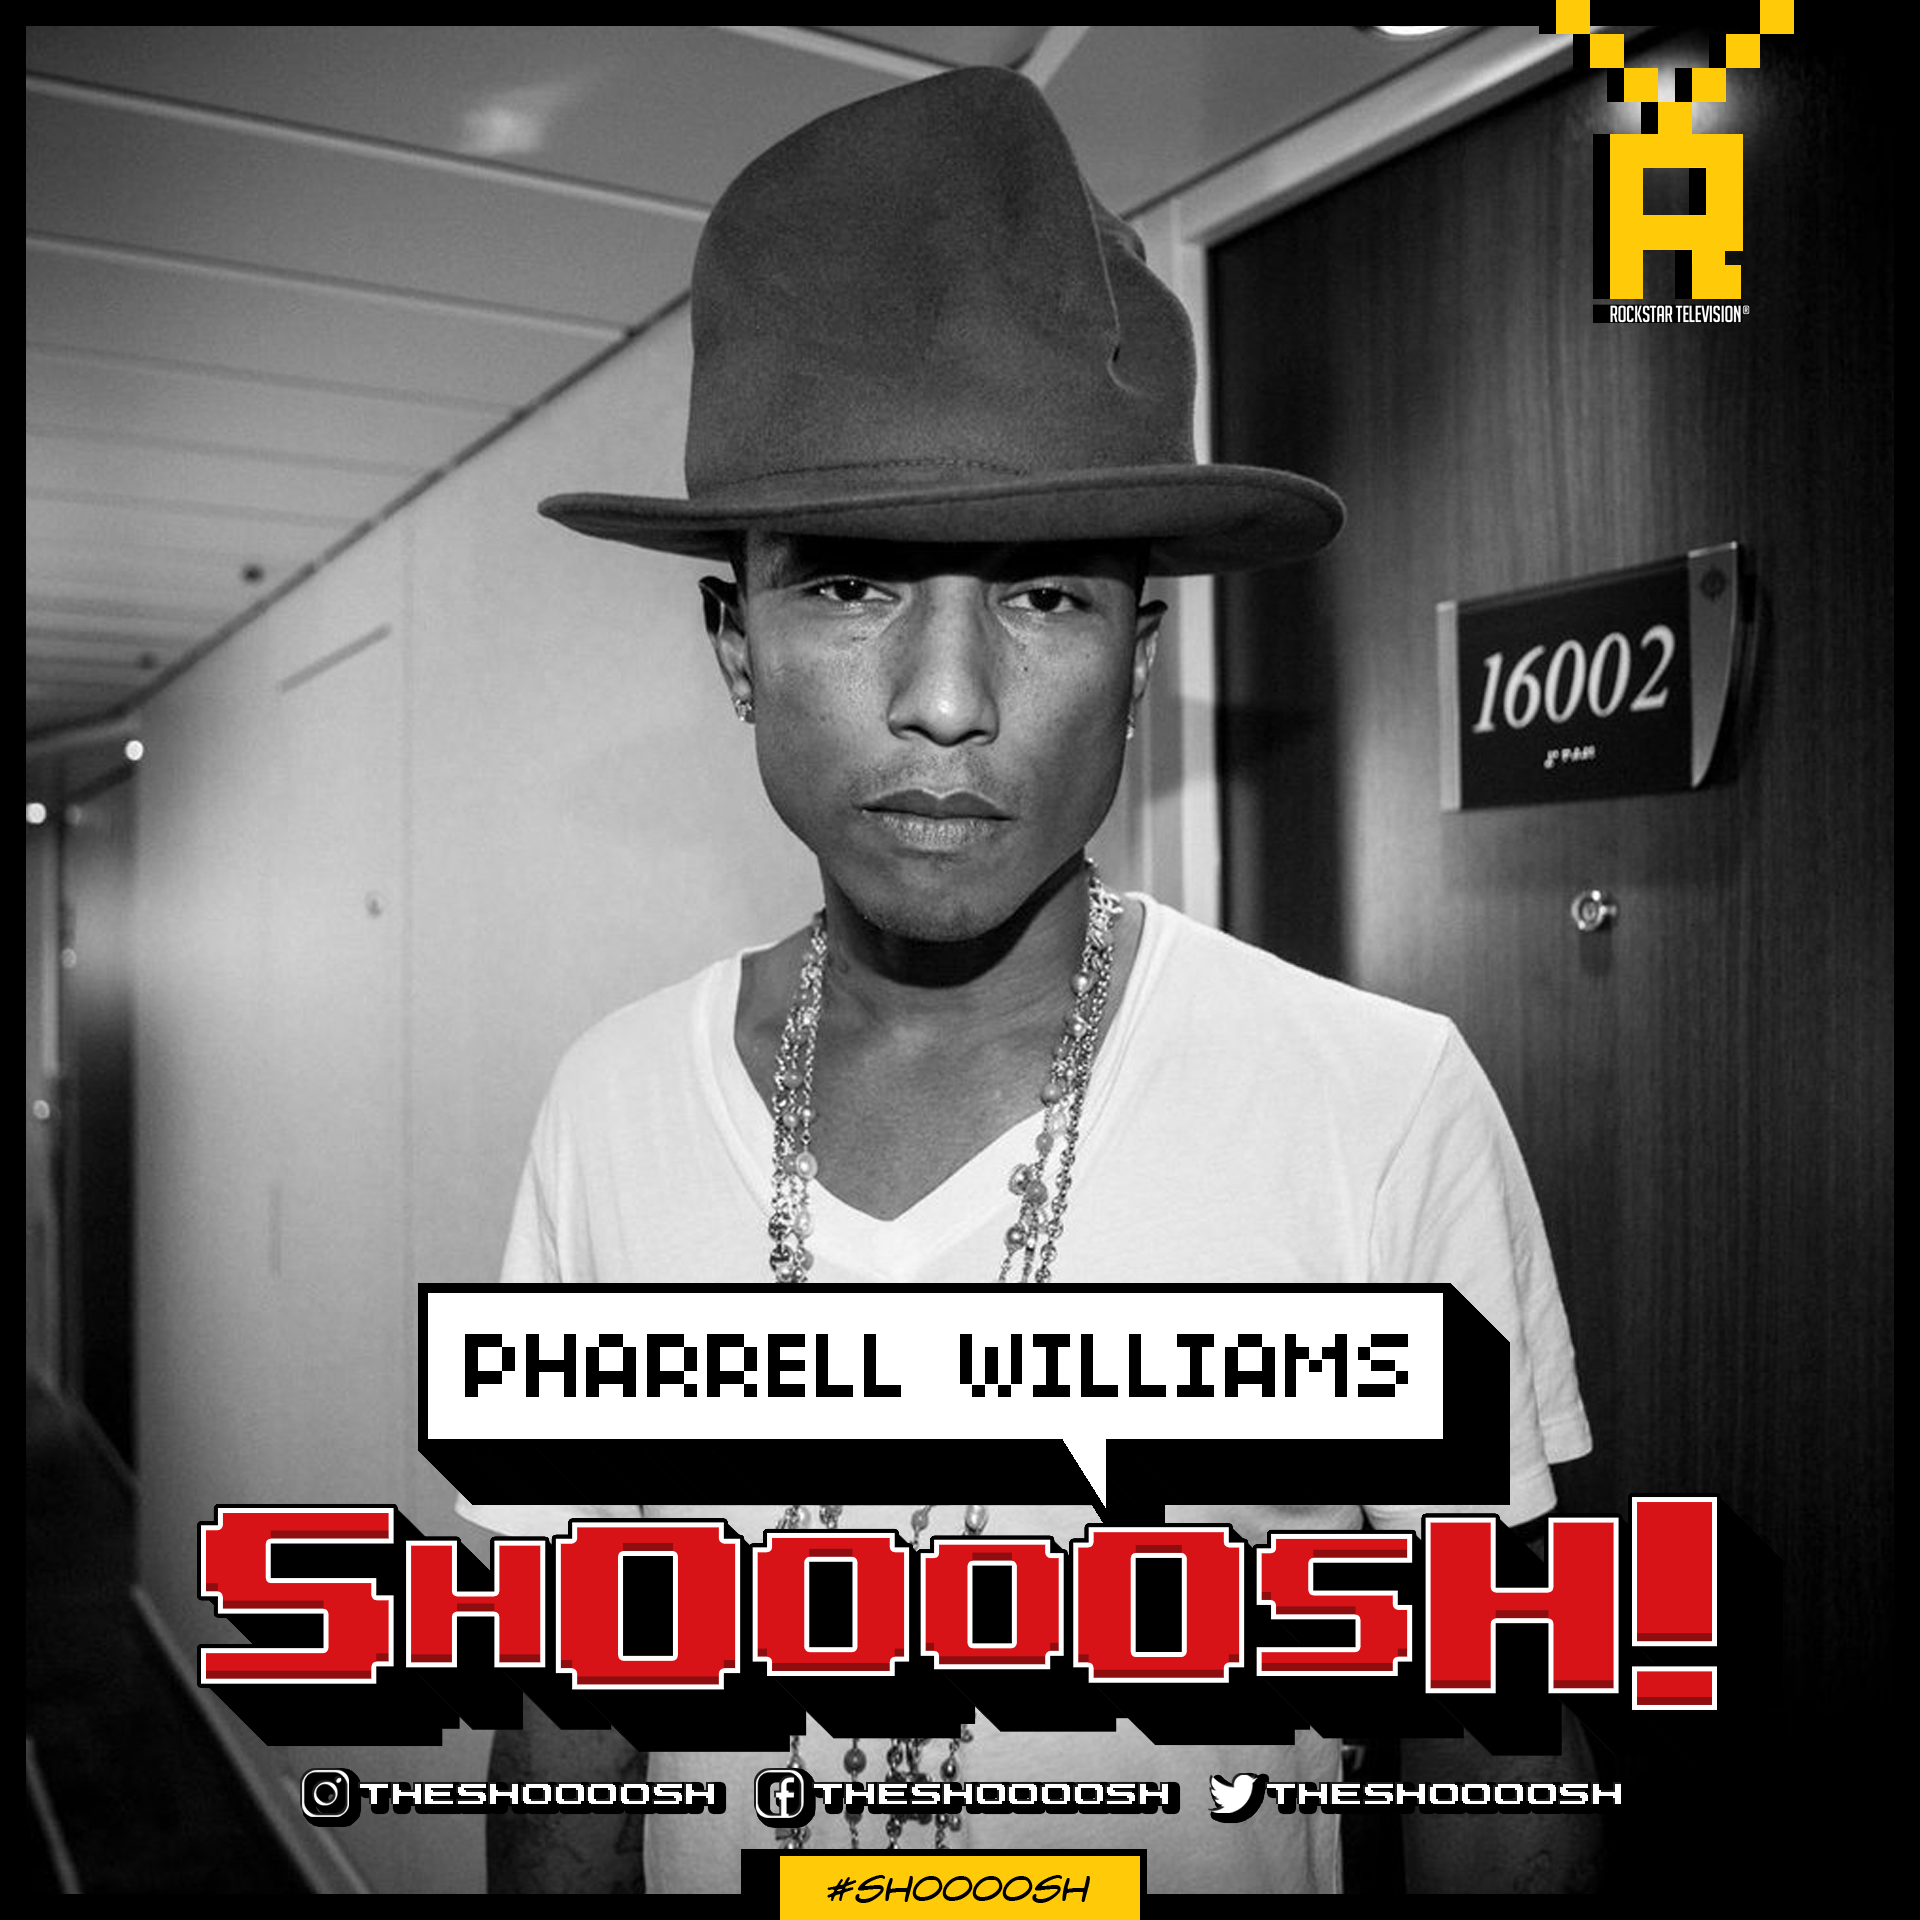 SHOOOOSH! PHARRELL WILLIAMS00001